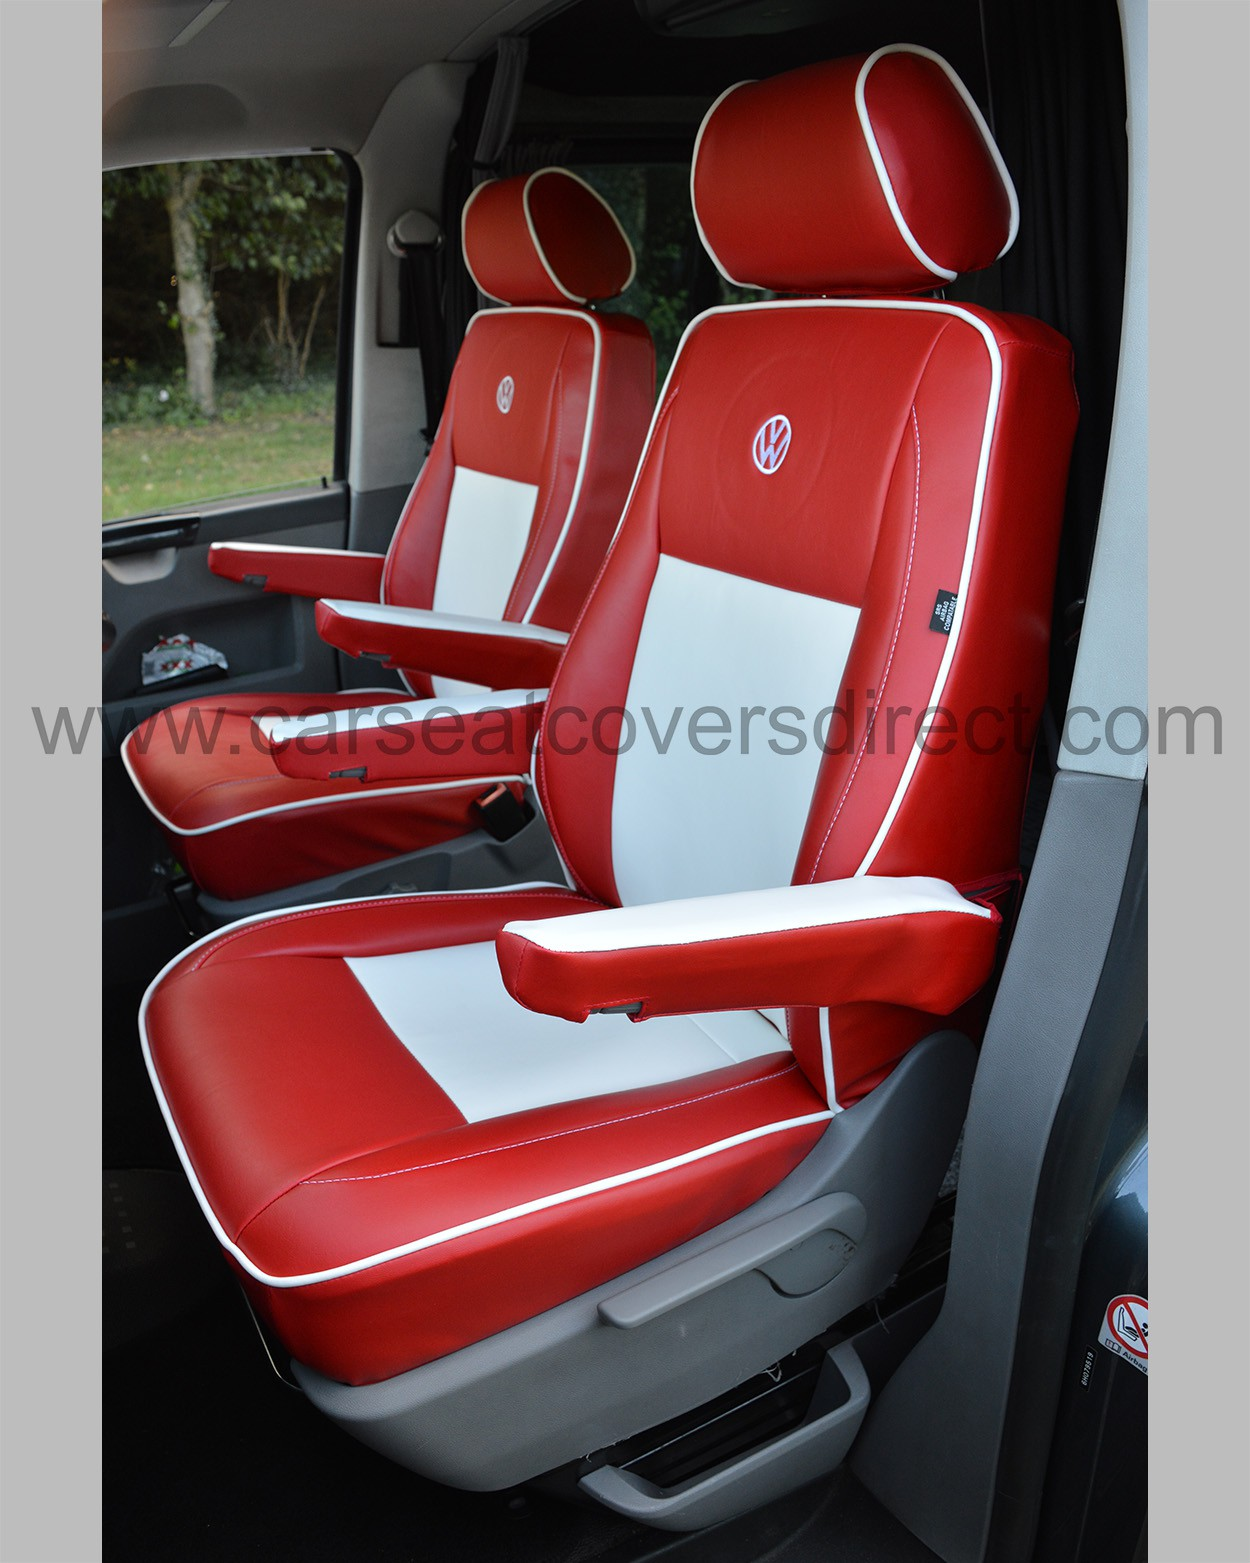 Vw T5 Seat Covers Red Amp White Leatherette Car Seat